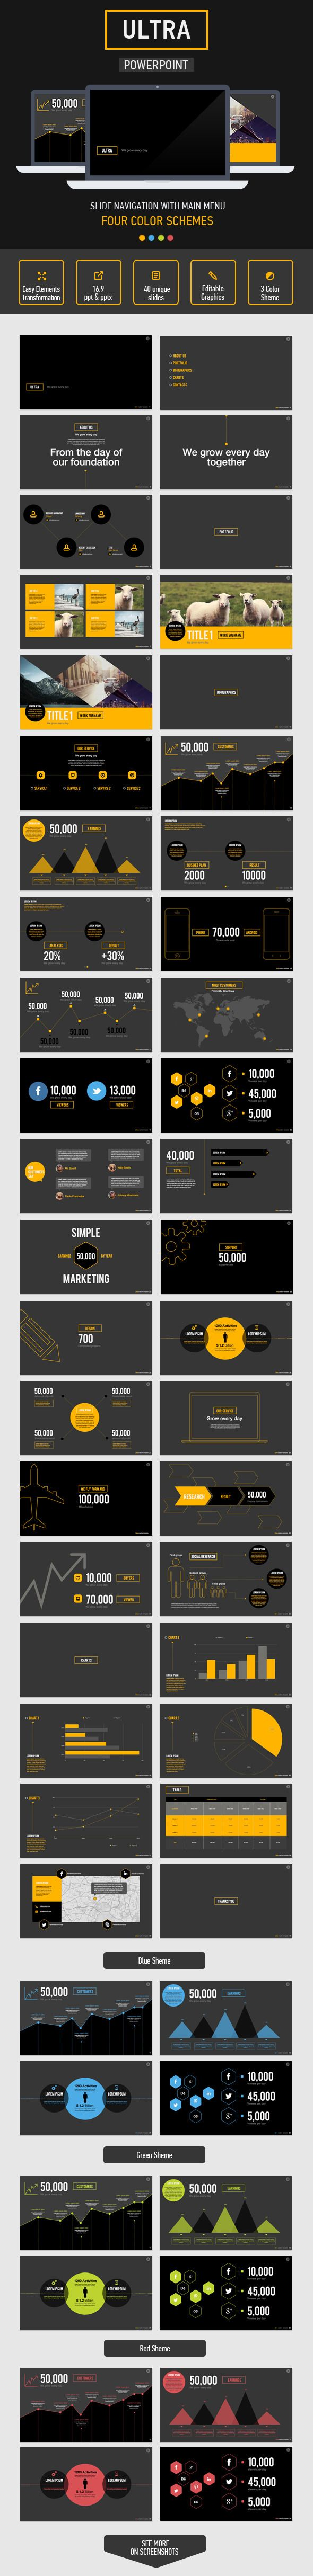 Ultra PowerPoint Presentation Template